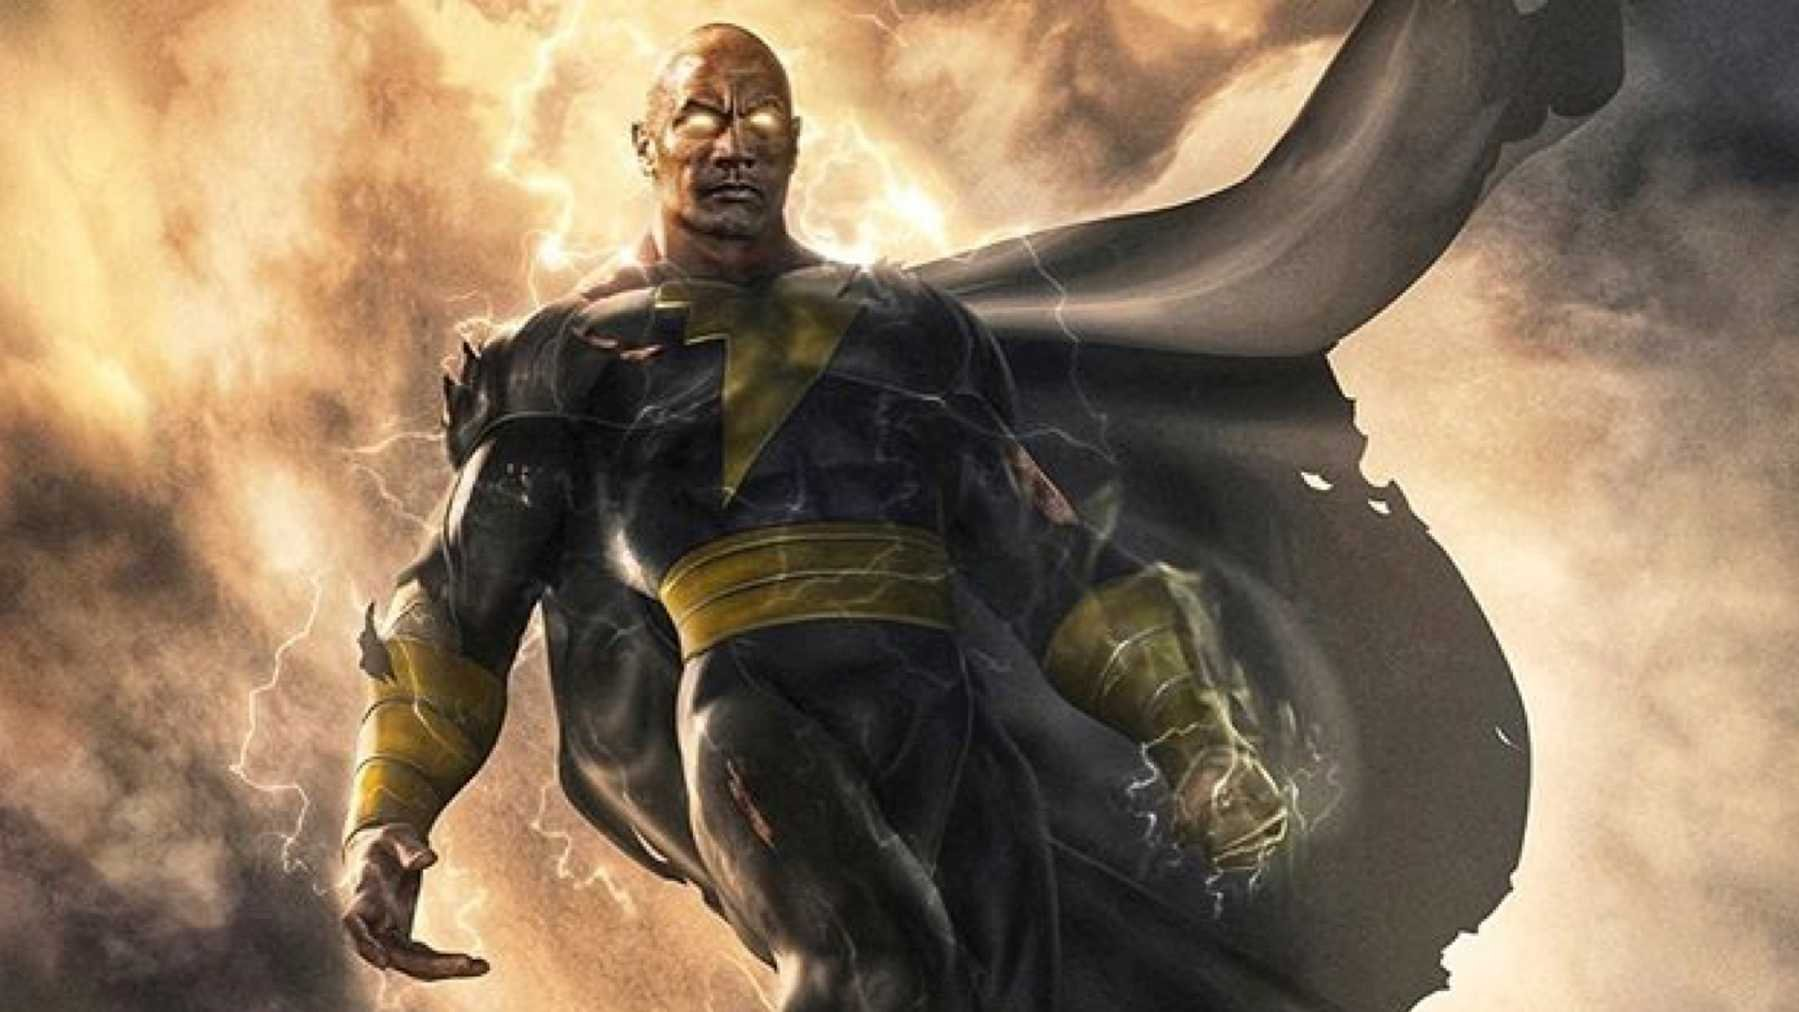 Watch The Rock As Black Adam Fight Superman In This Incredible Trailer